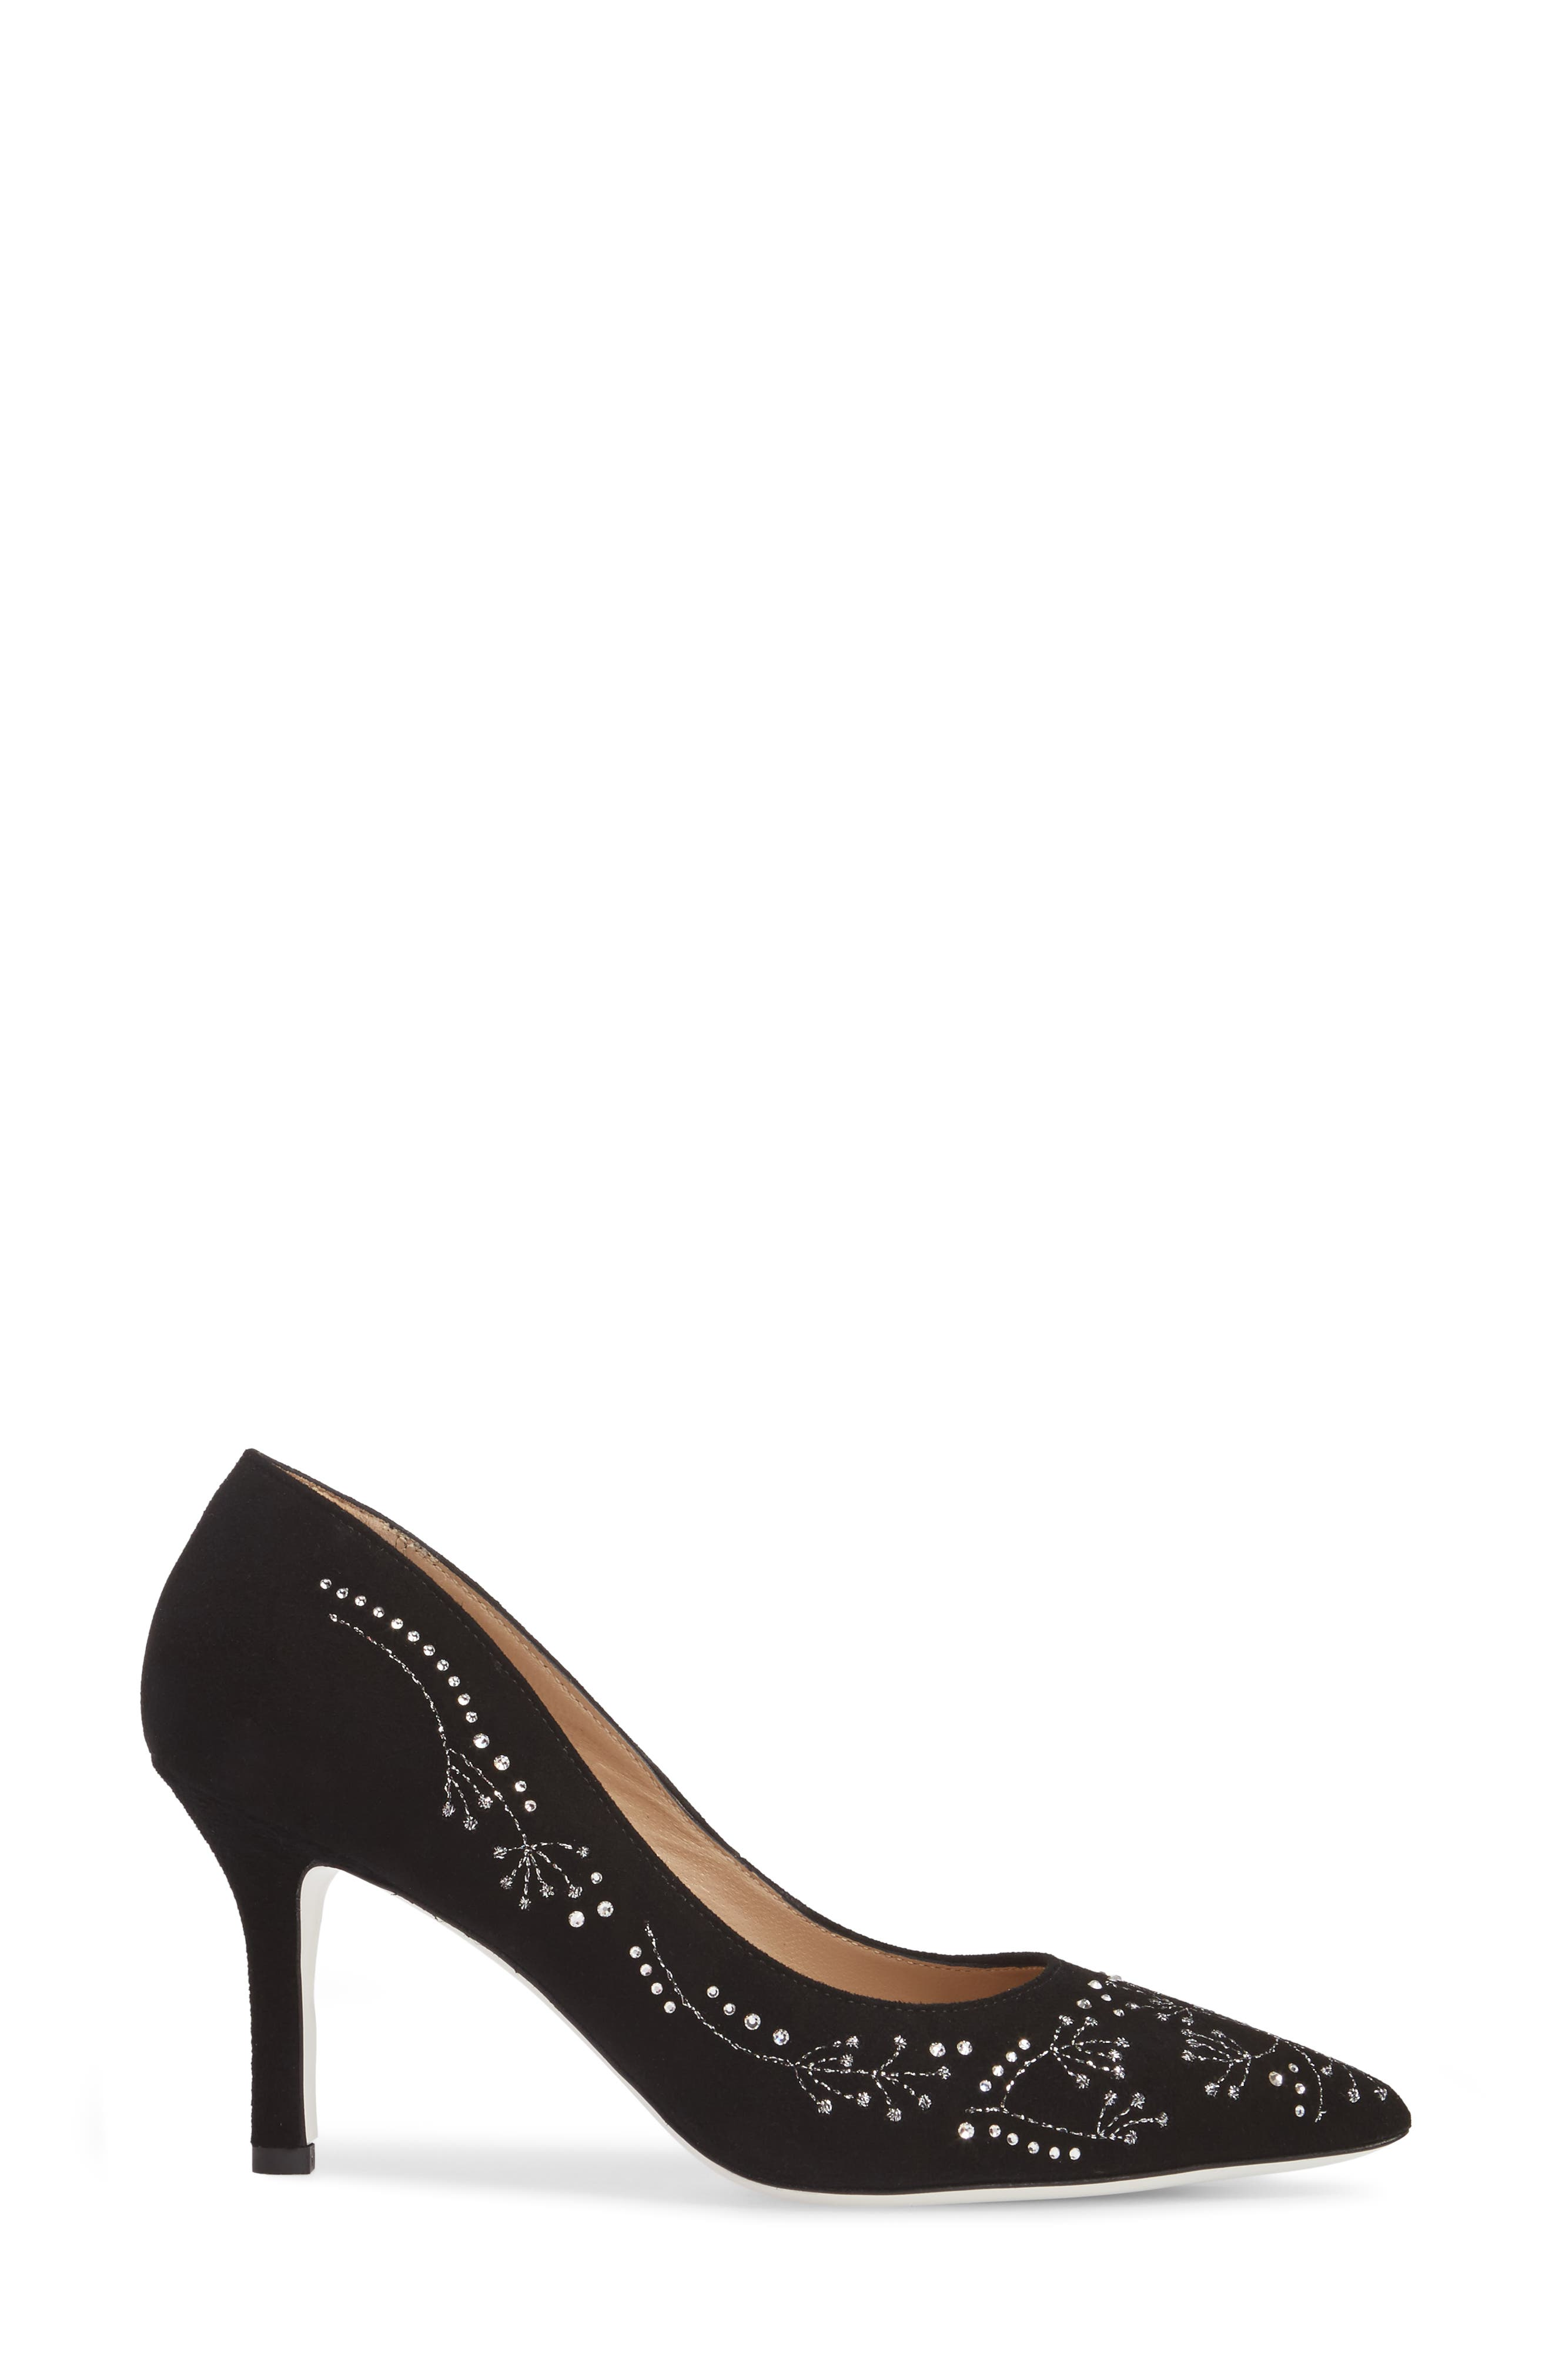 Carla Crystal Embellished Pump,                             Alternate thumbnail 3, color,                             001